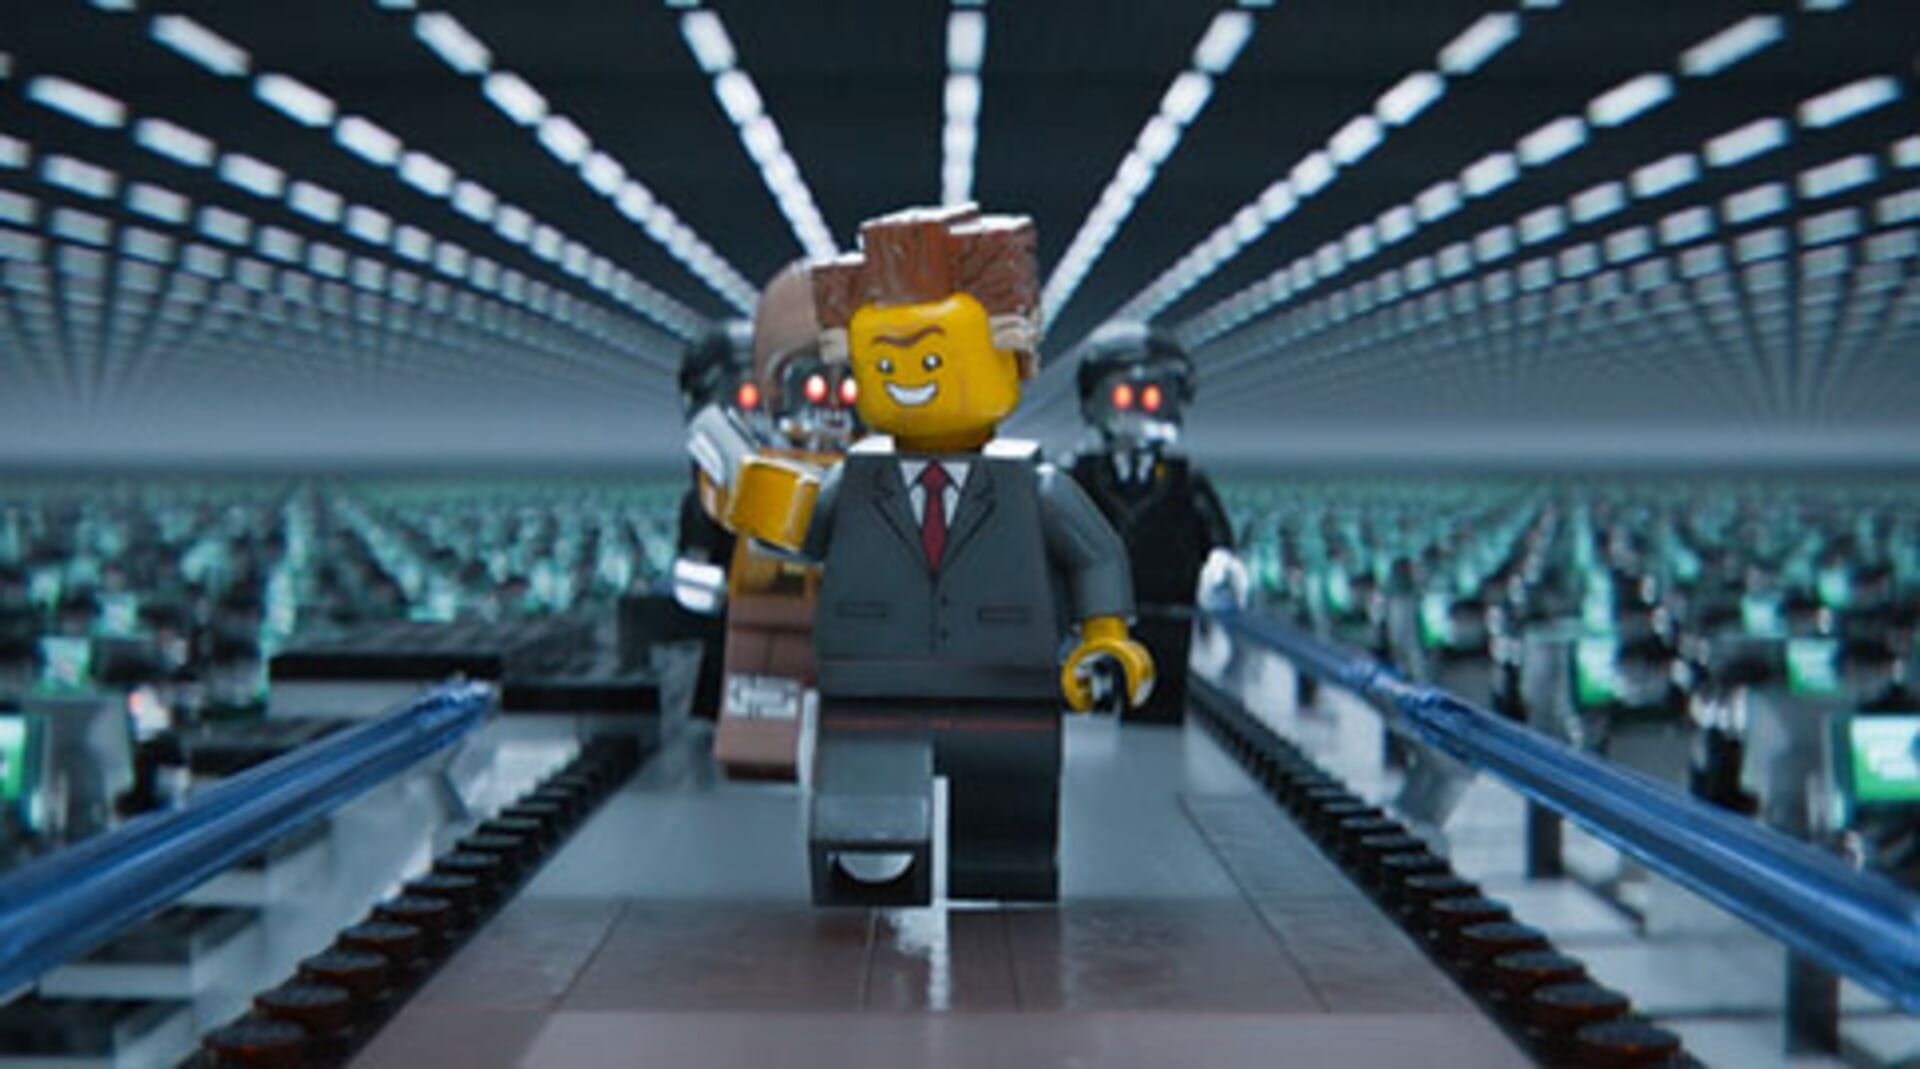 The Lego Movie - Image 11